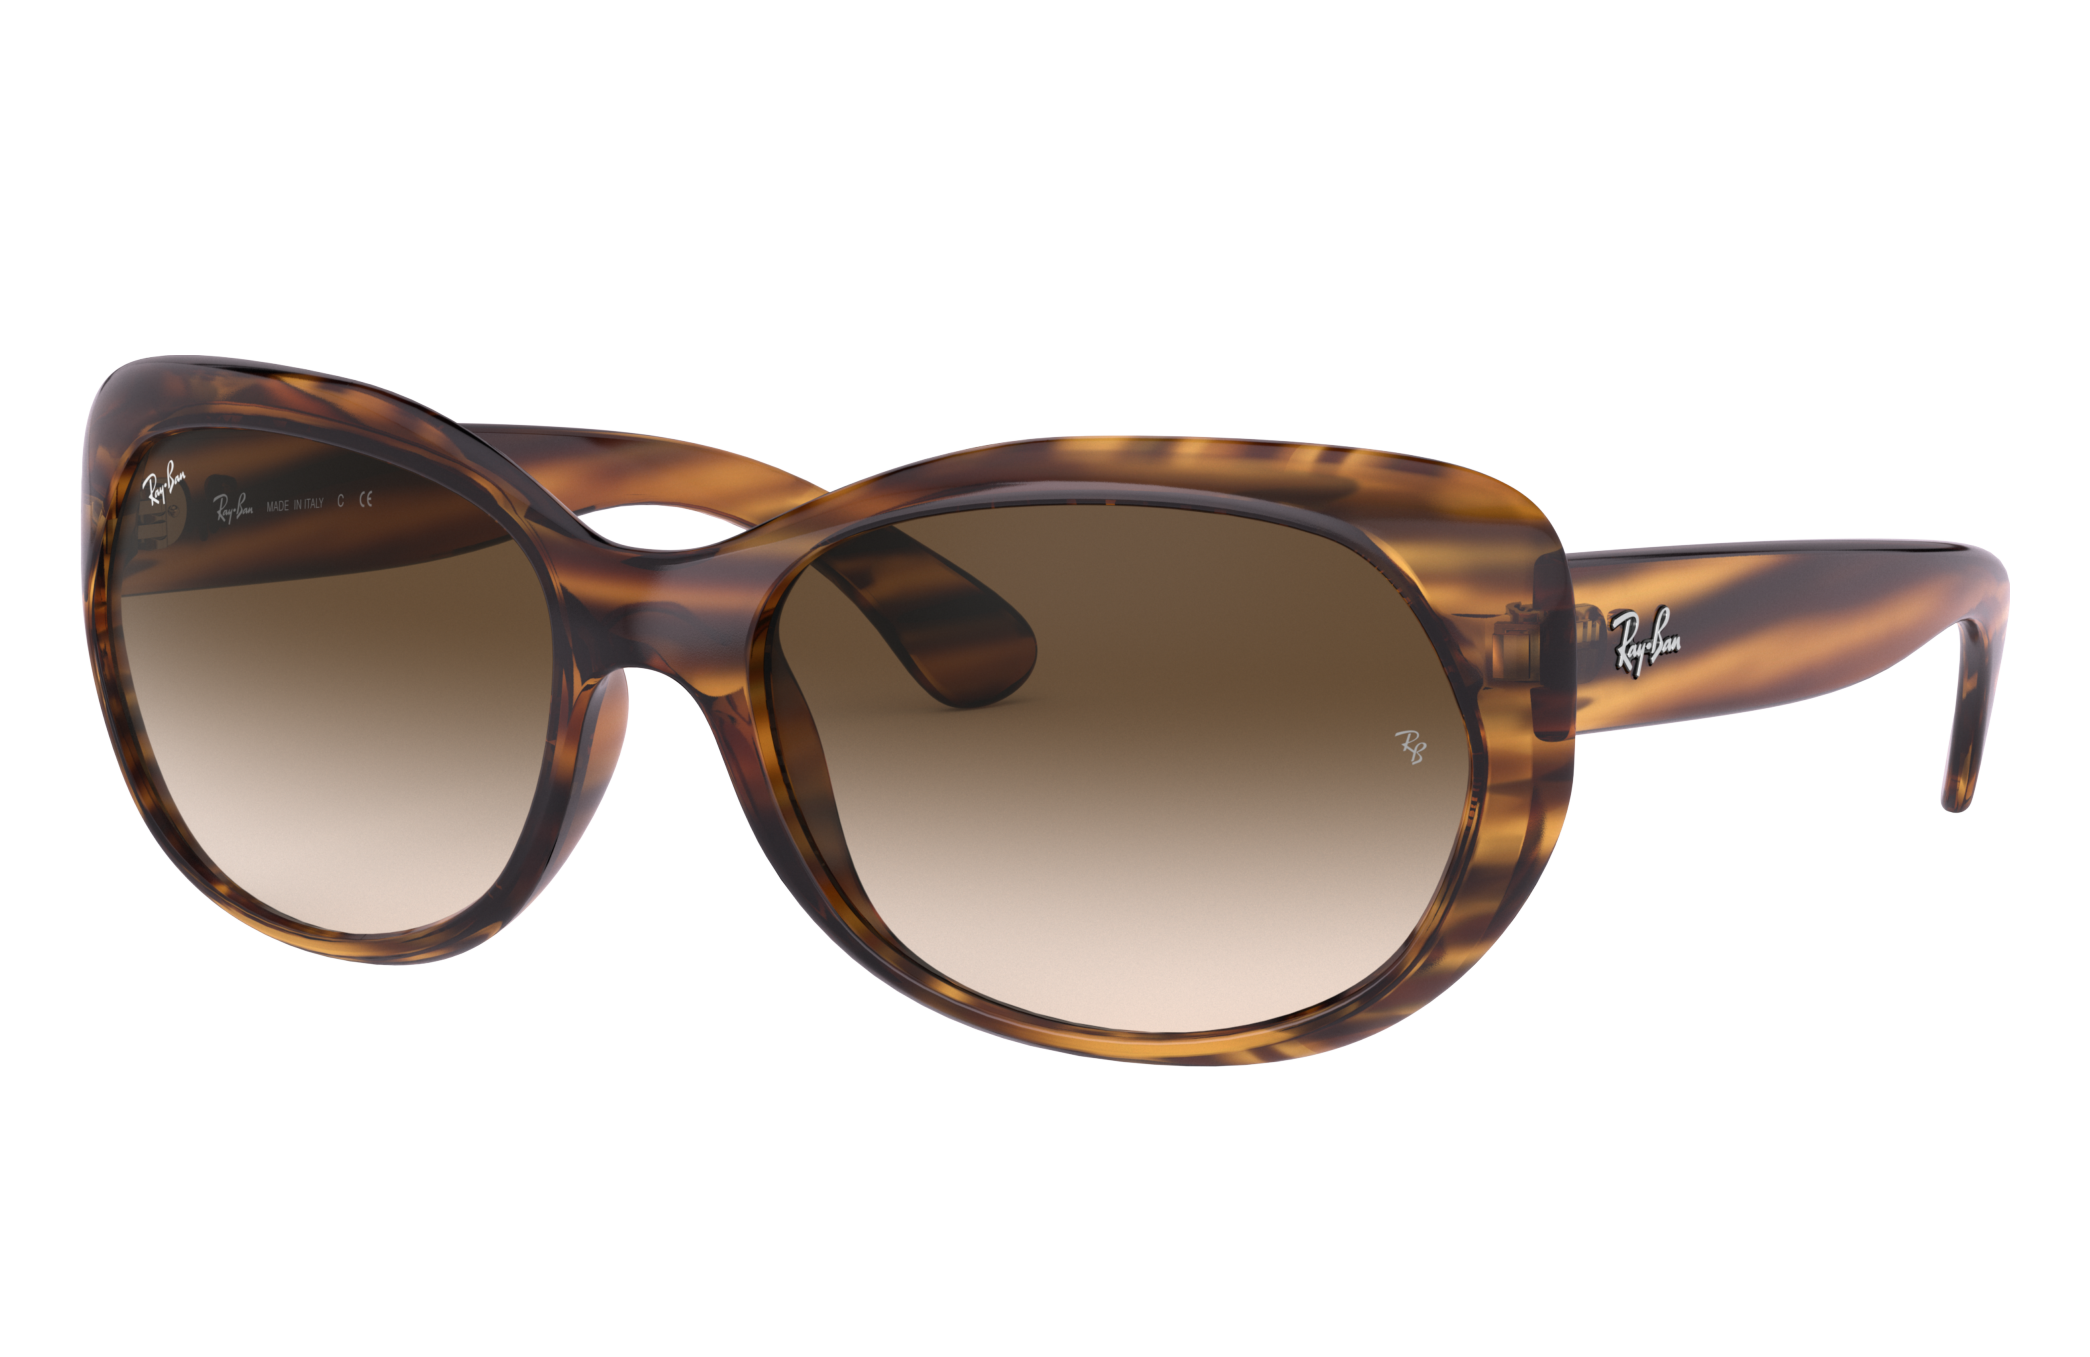 Ray-Ban Rb4325 Striped Brown, Brown Lenses - RB4325